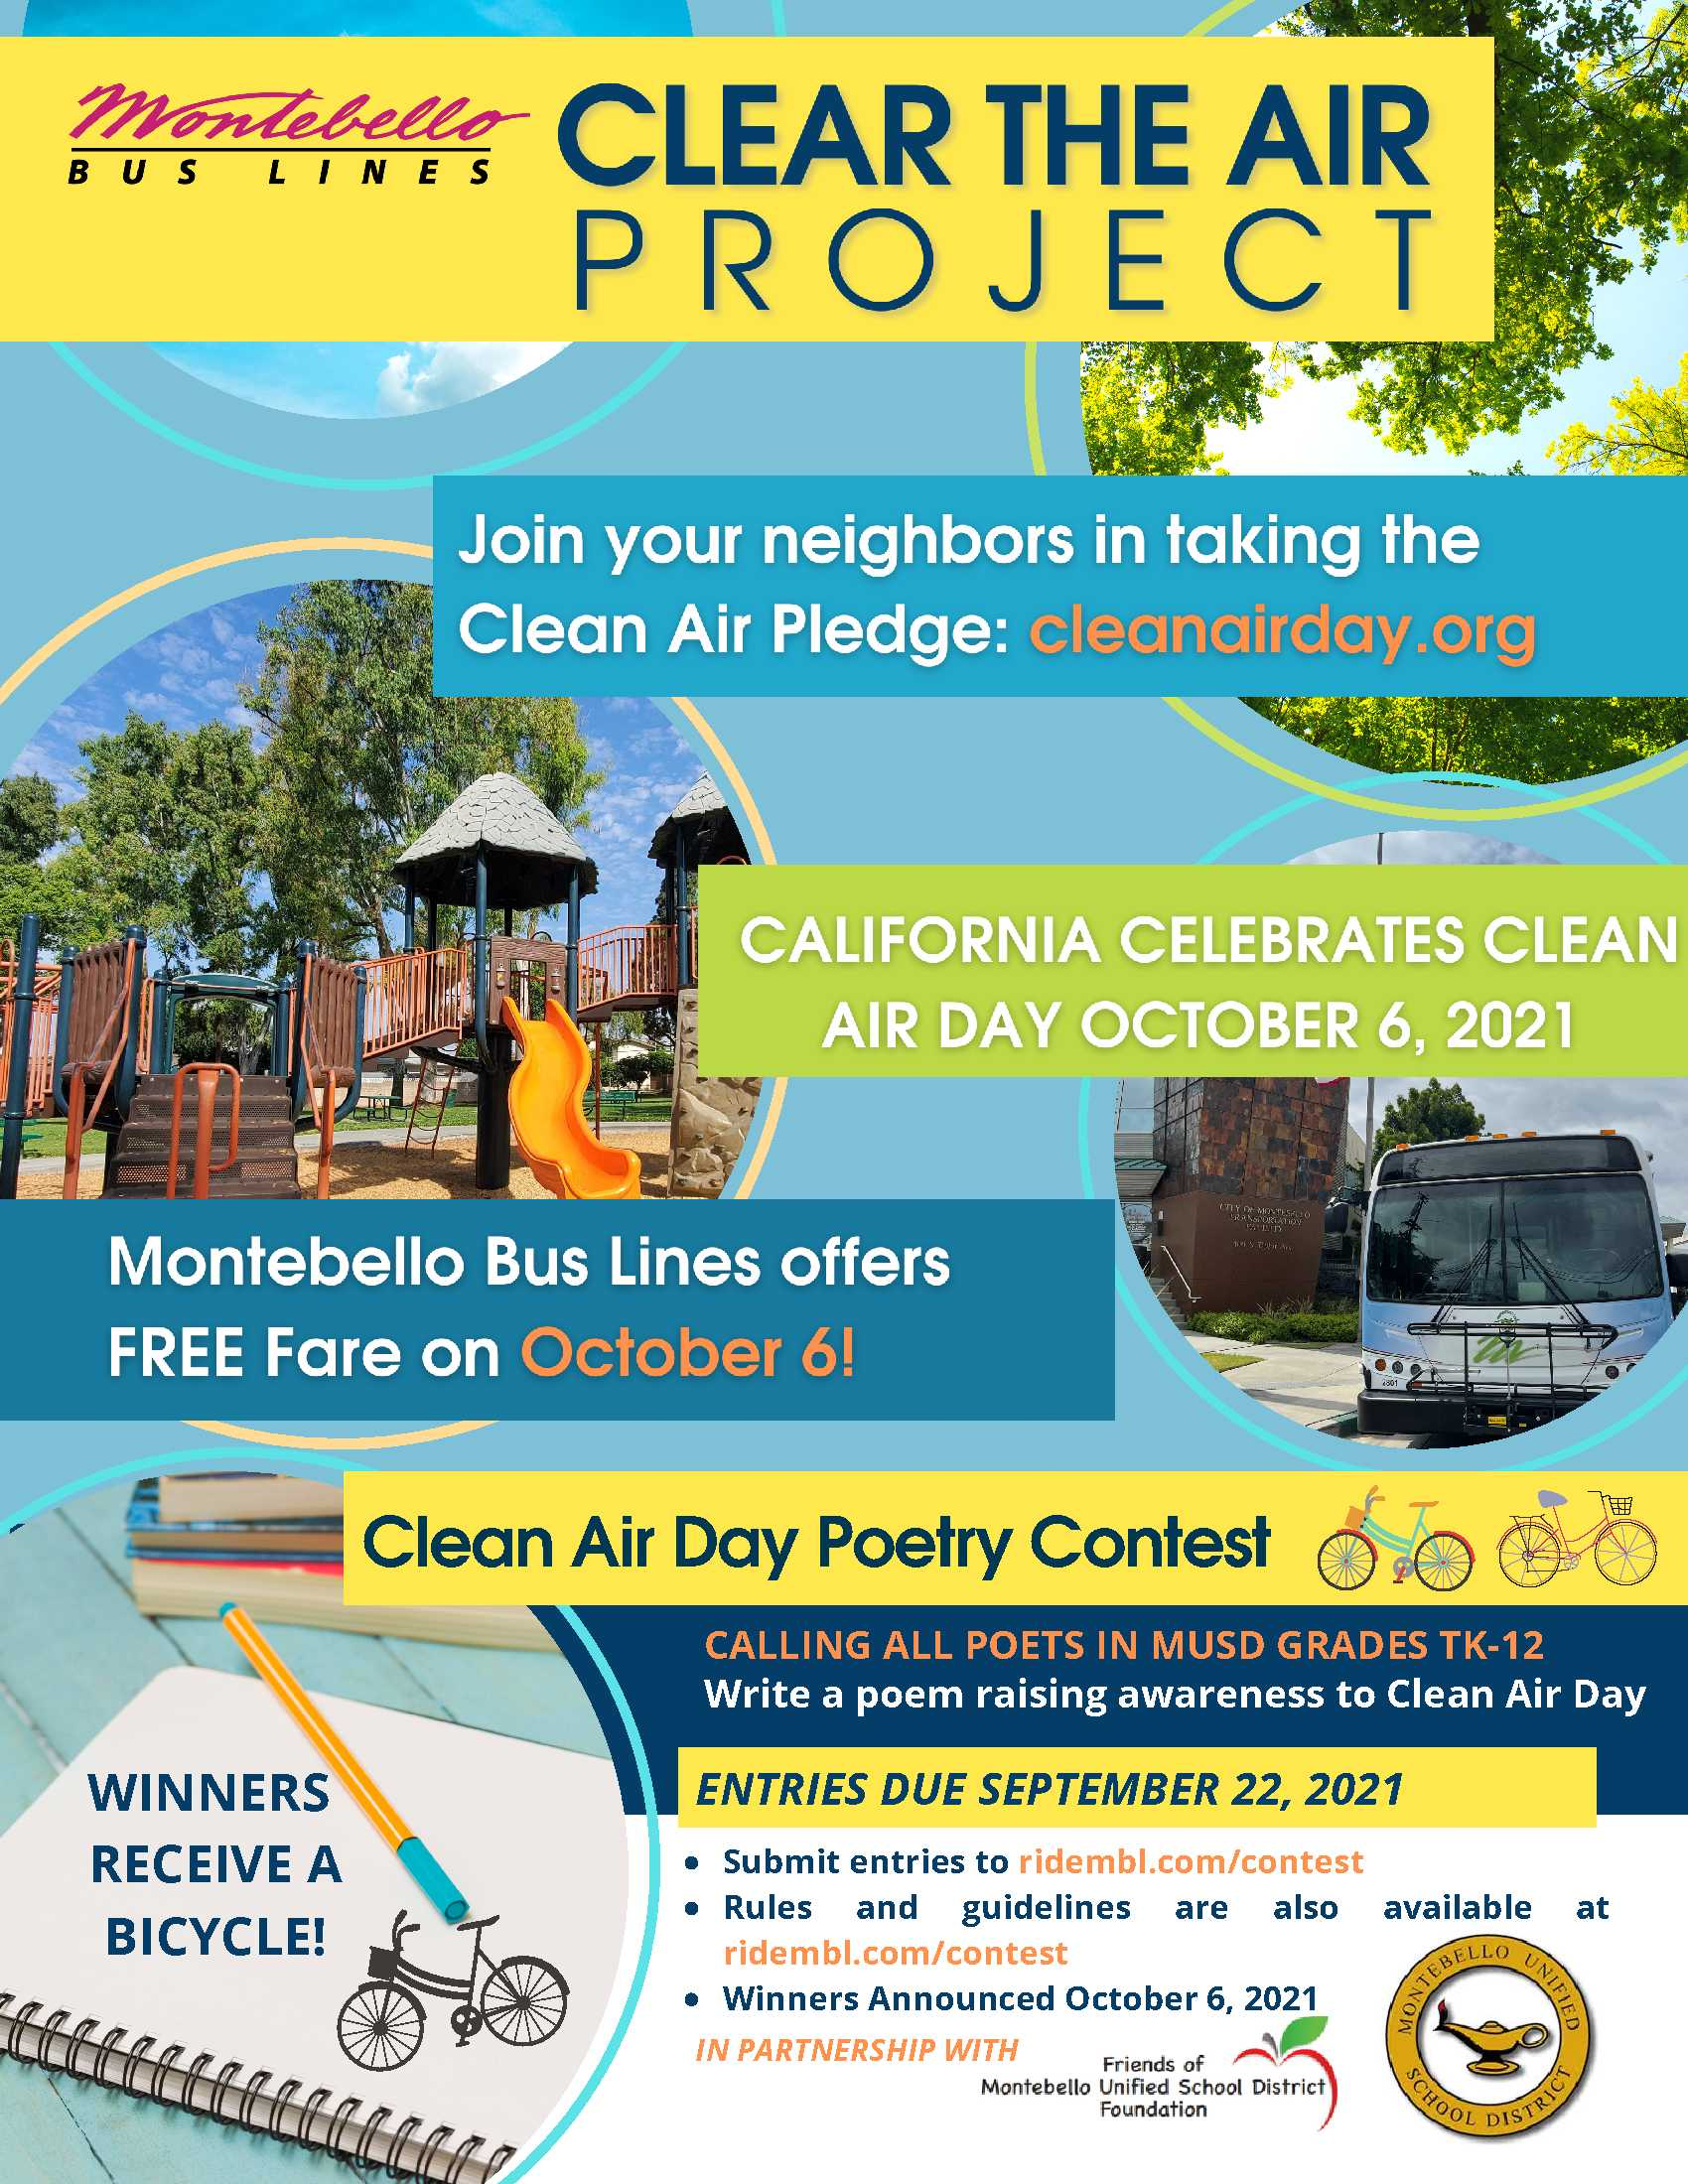 Clean Air Day Poetry Contest